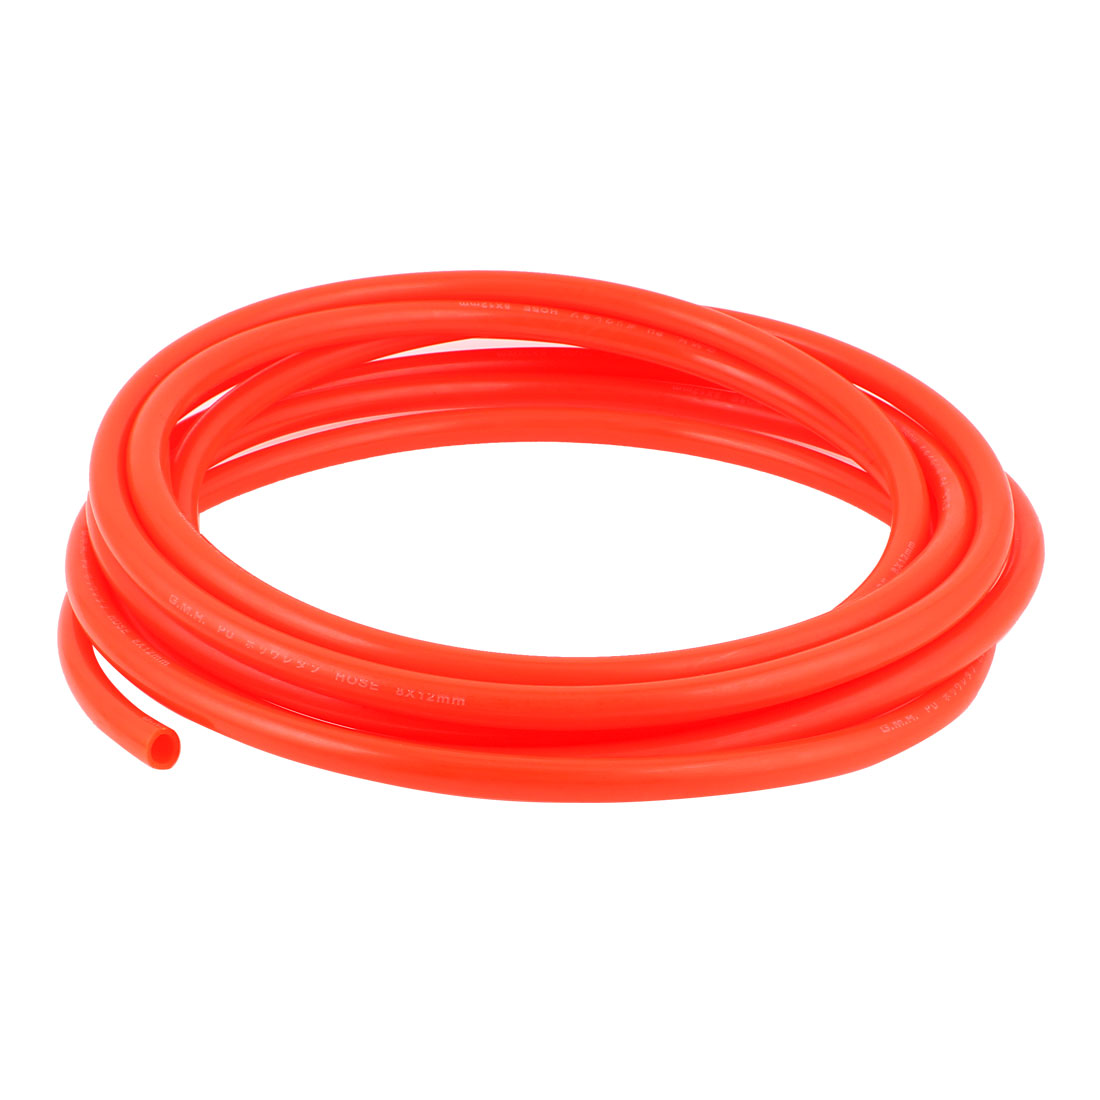 12mm x 8mm Fleaxible PU Tube Pneumatic Polyurethane Hose 5.5M Length Orange